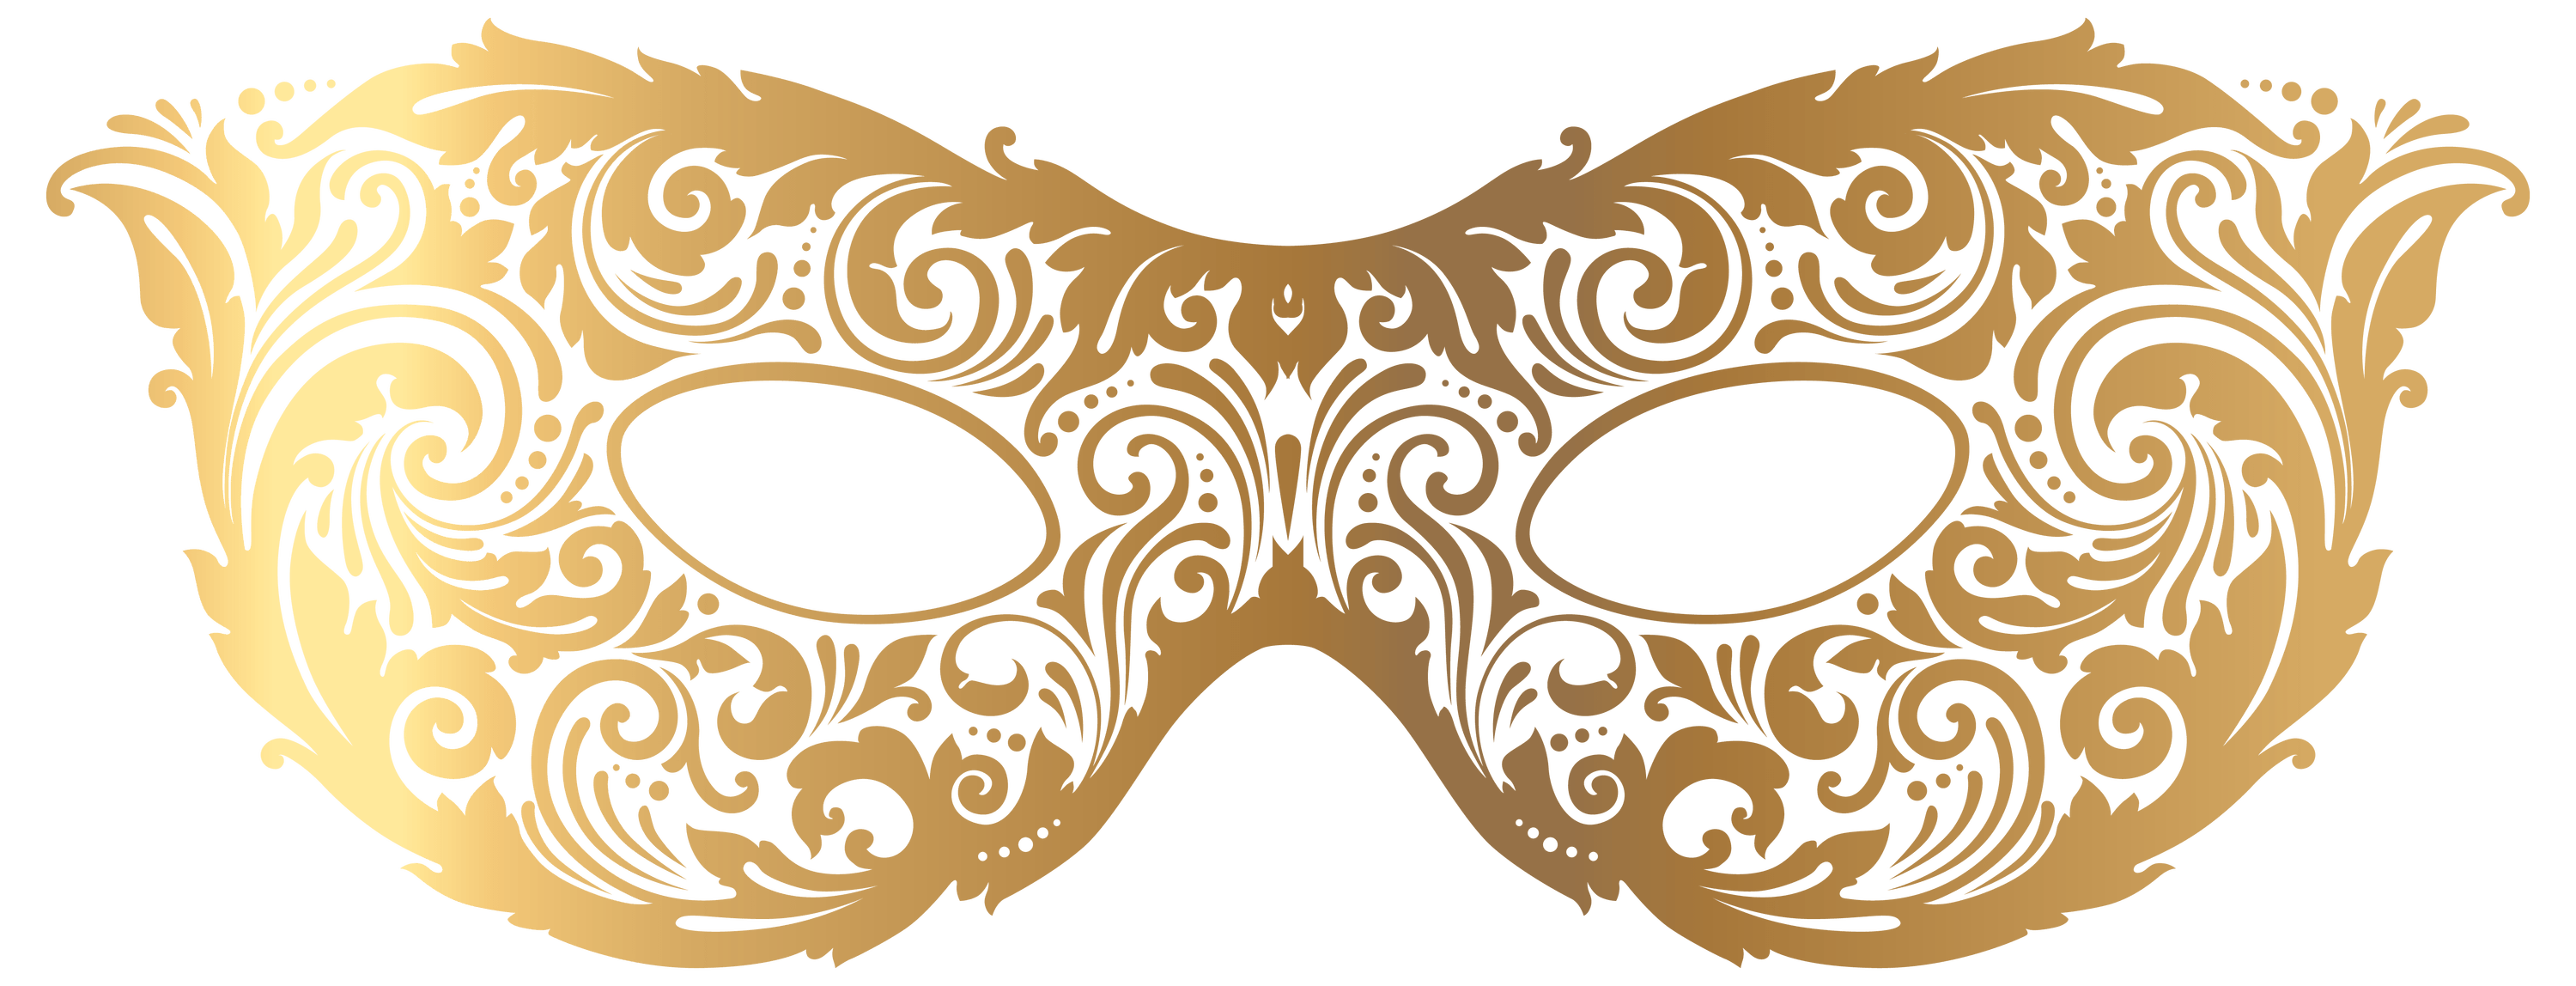 download Gold Carnival Mask transparent PNG